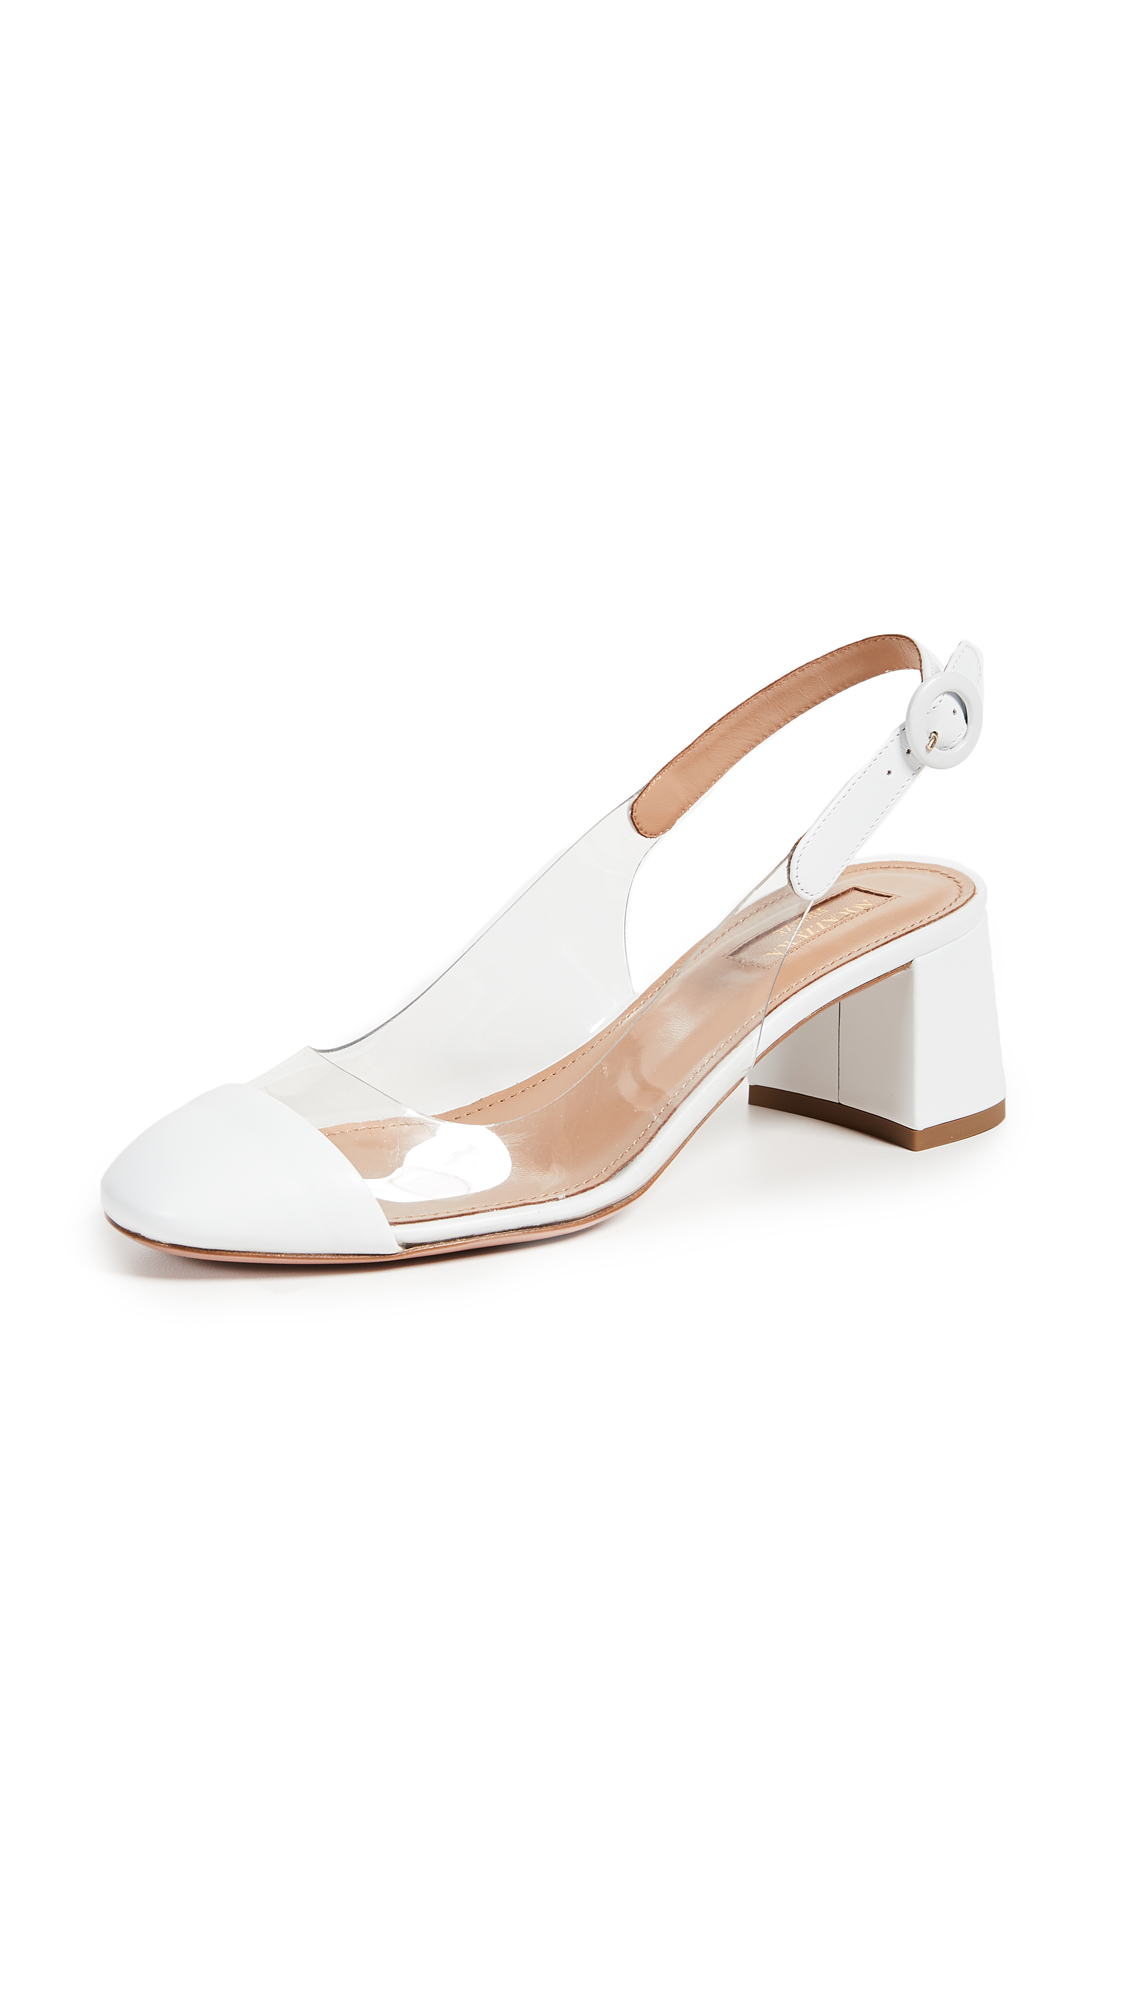 Aquazzura Optic 50mm Pumps - White